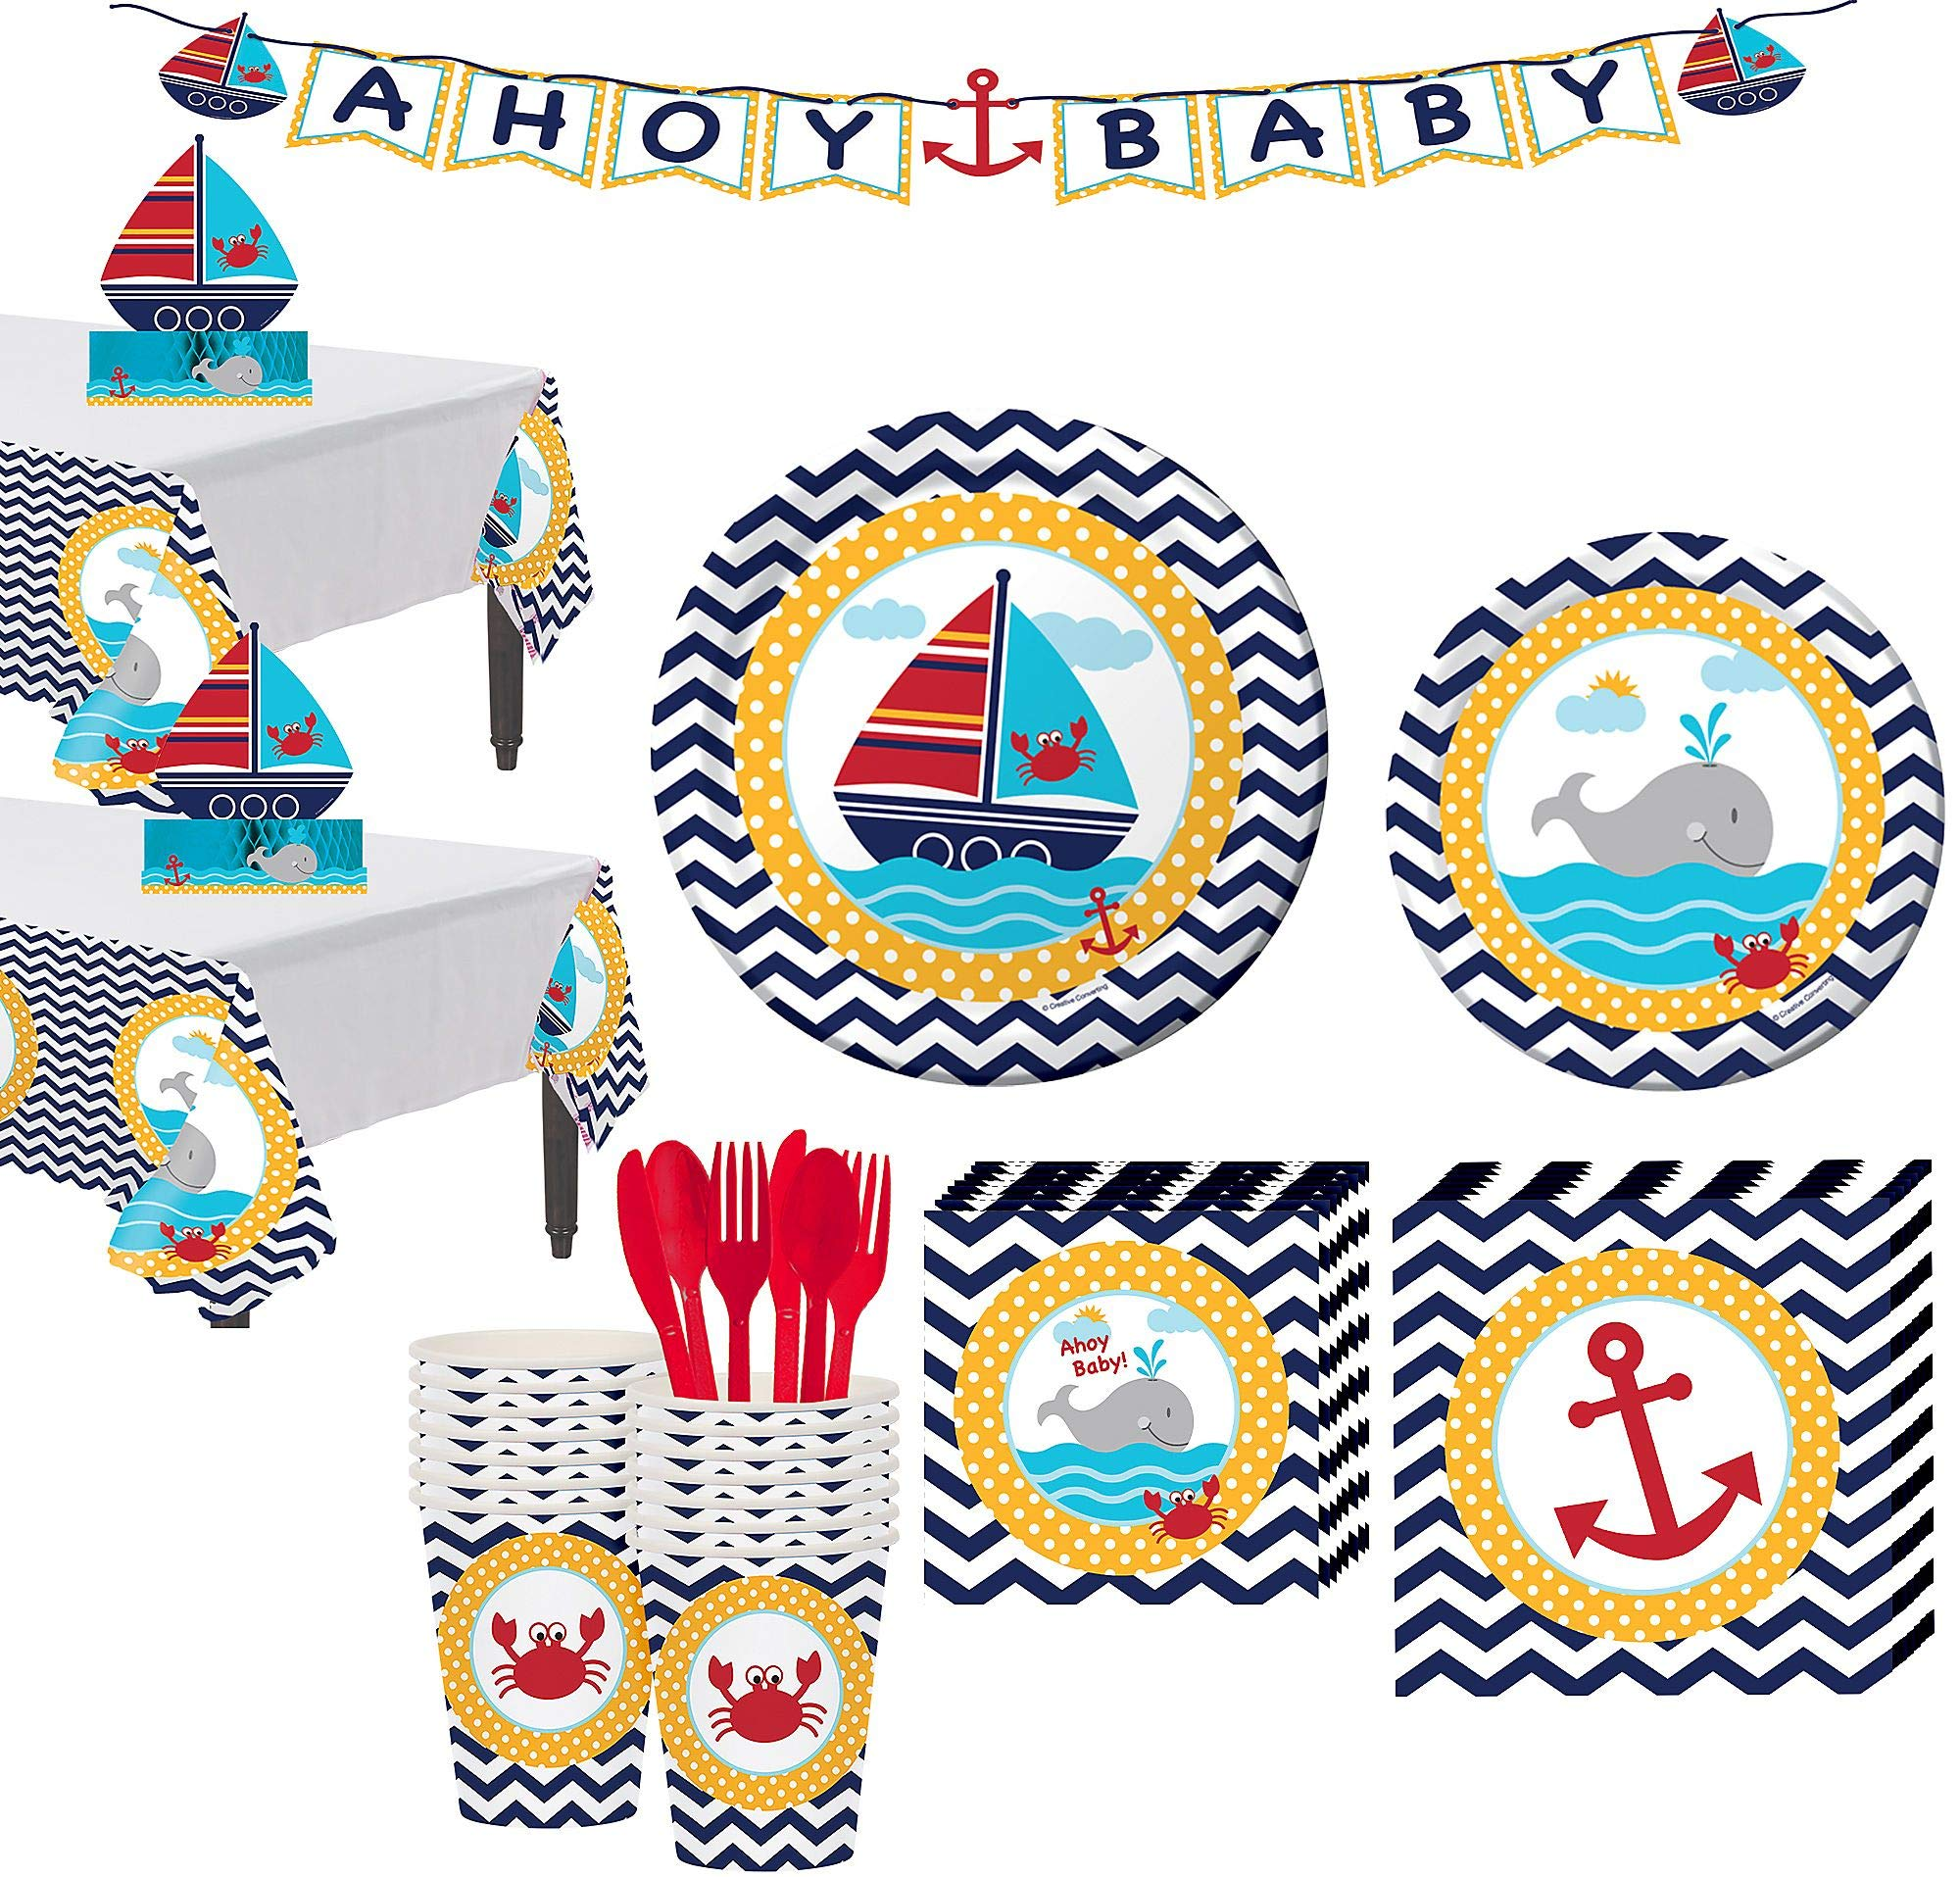 Party City Ahoy Nautical Baby Shower Tableware Kit for 32 Guests, Includes 2 Tables Covers, Centerpiece, Letter Banner